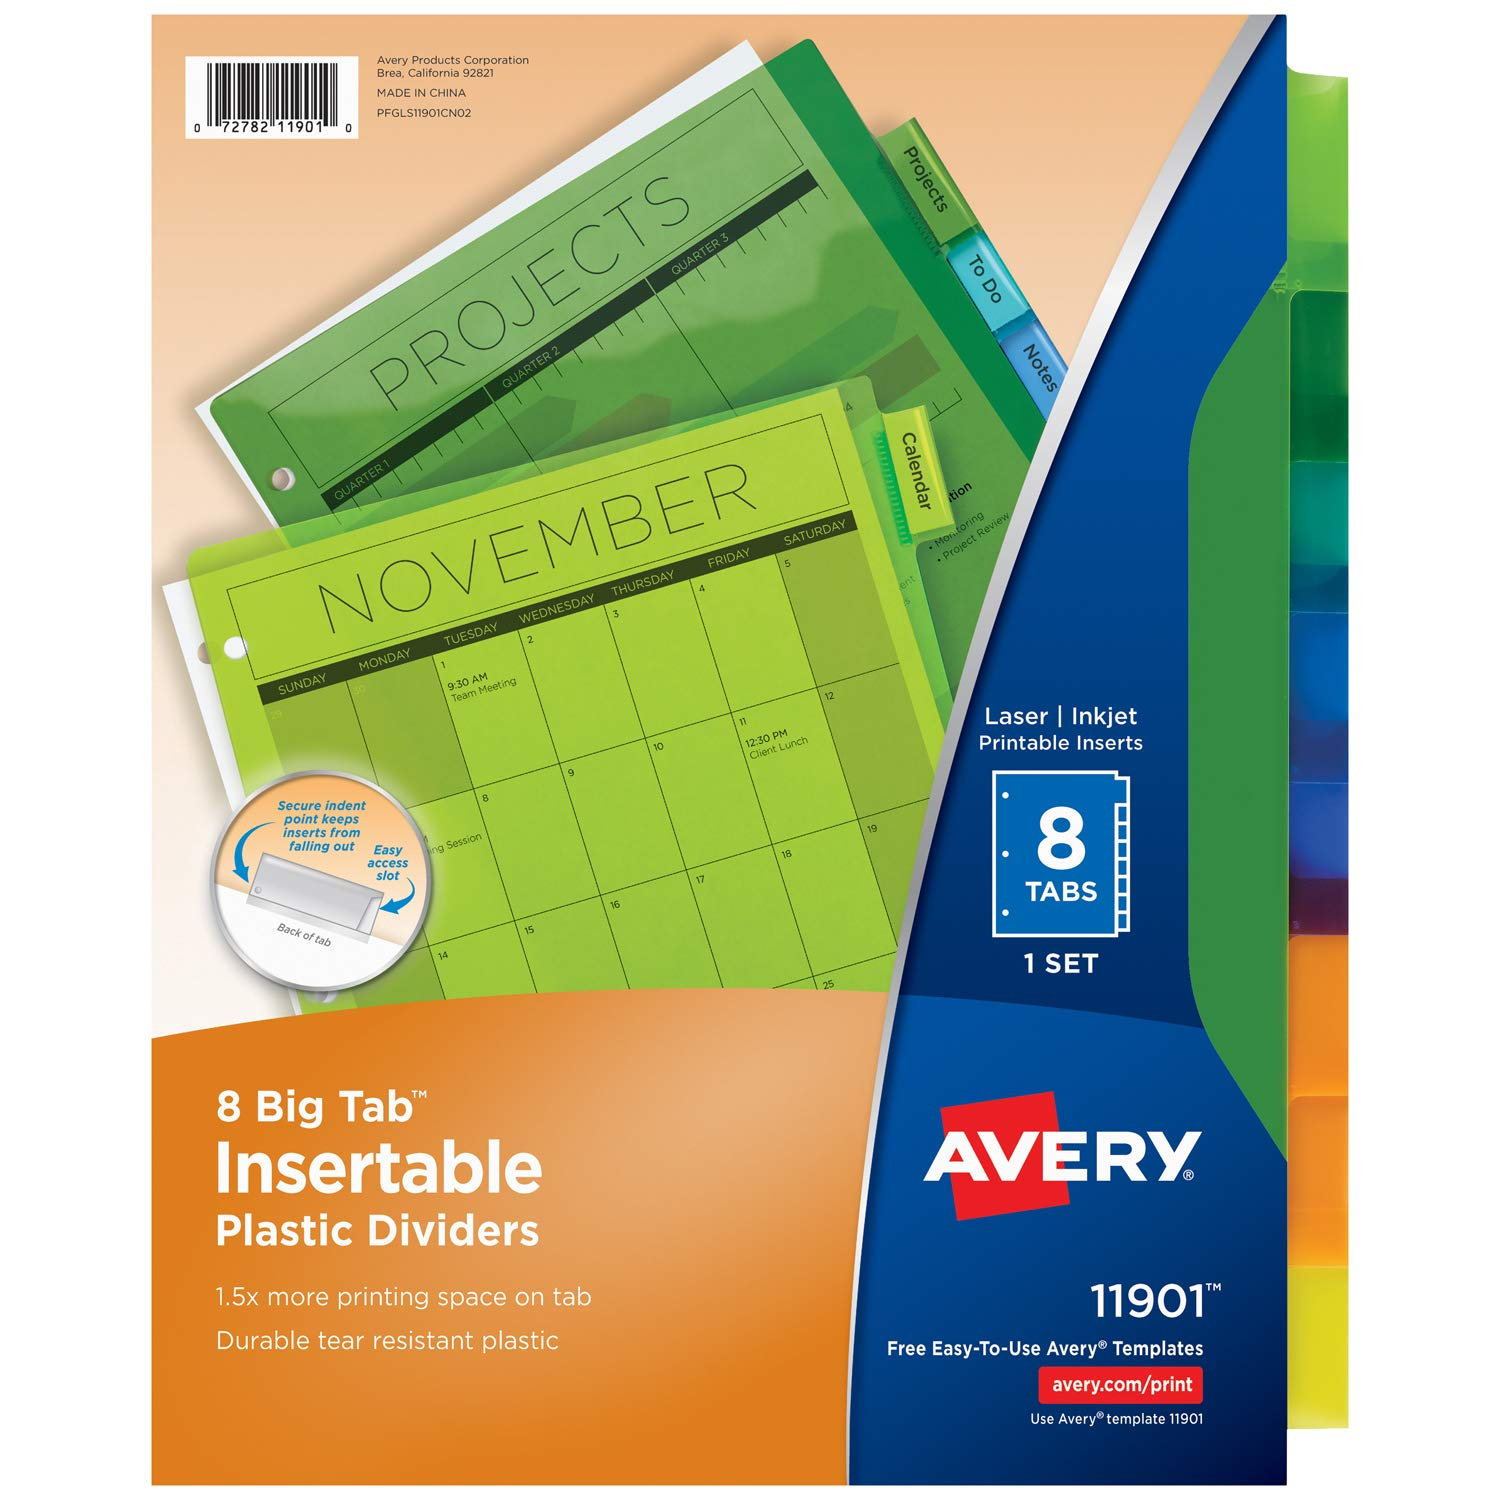 Avery Big Tab Insertable Plastic Dividers, 8 Multicolor Tabs, Case Pack of 24 Sets (11901) Avery Products Corporation 5007278211901